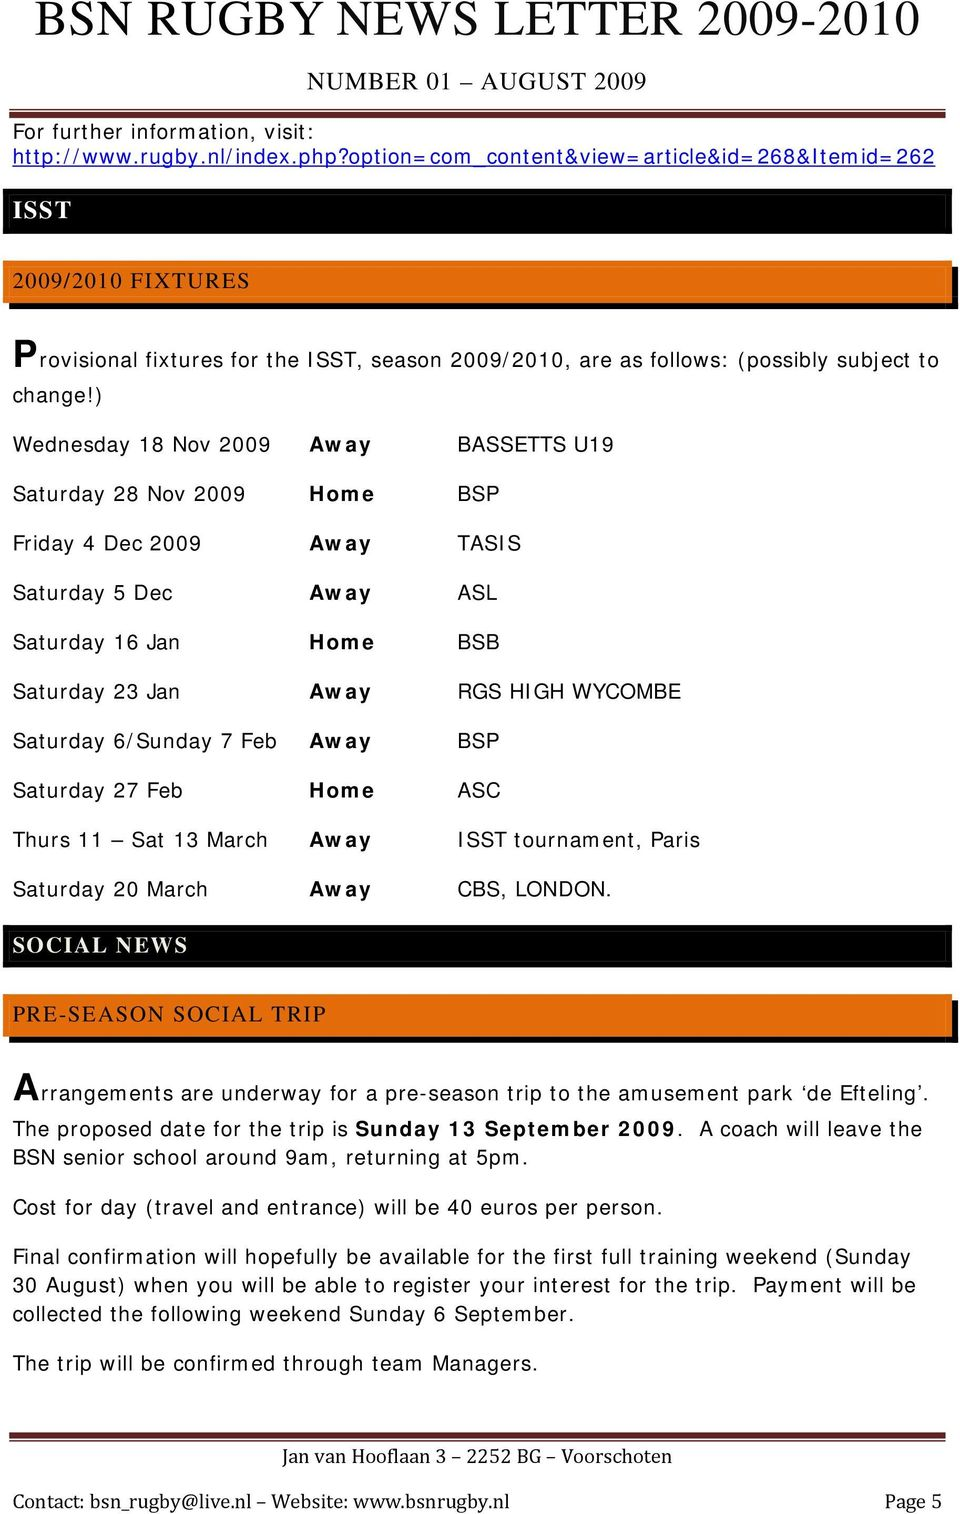 ) Wednesday 18 Nov 2009 Away BASSETTS U19 Saturday 28 Nov 2009 Home BSP Friday 4 Dec 2009 Away TASIS Saturday 5 Dec Away ASL Saturday 16 Jan Home BSB Saturday 23 Jan Away RGS HIGH WYCOMBE Saturday